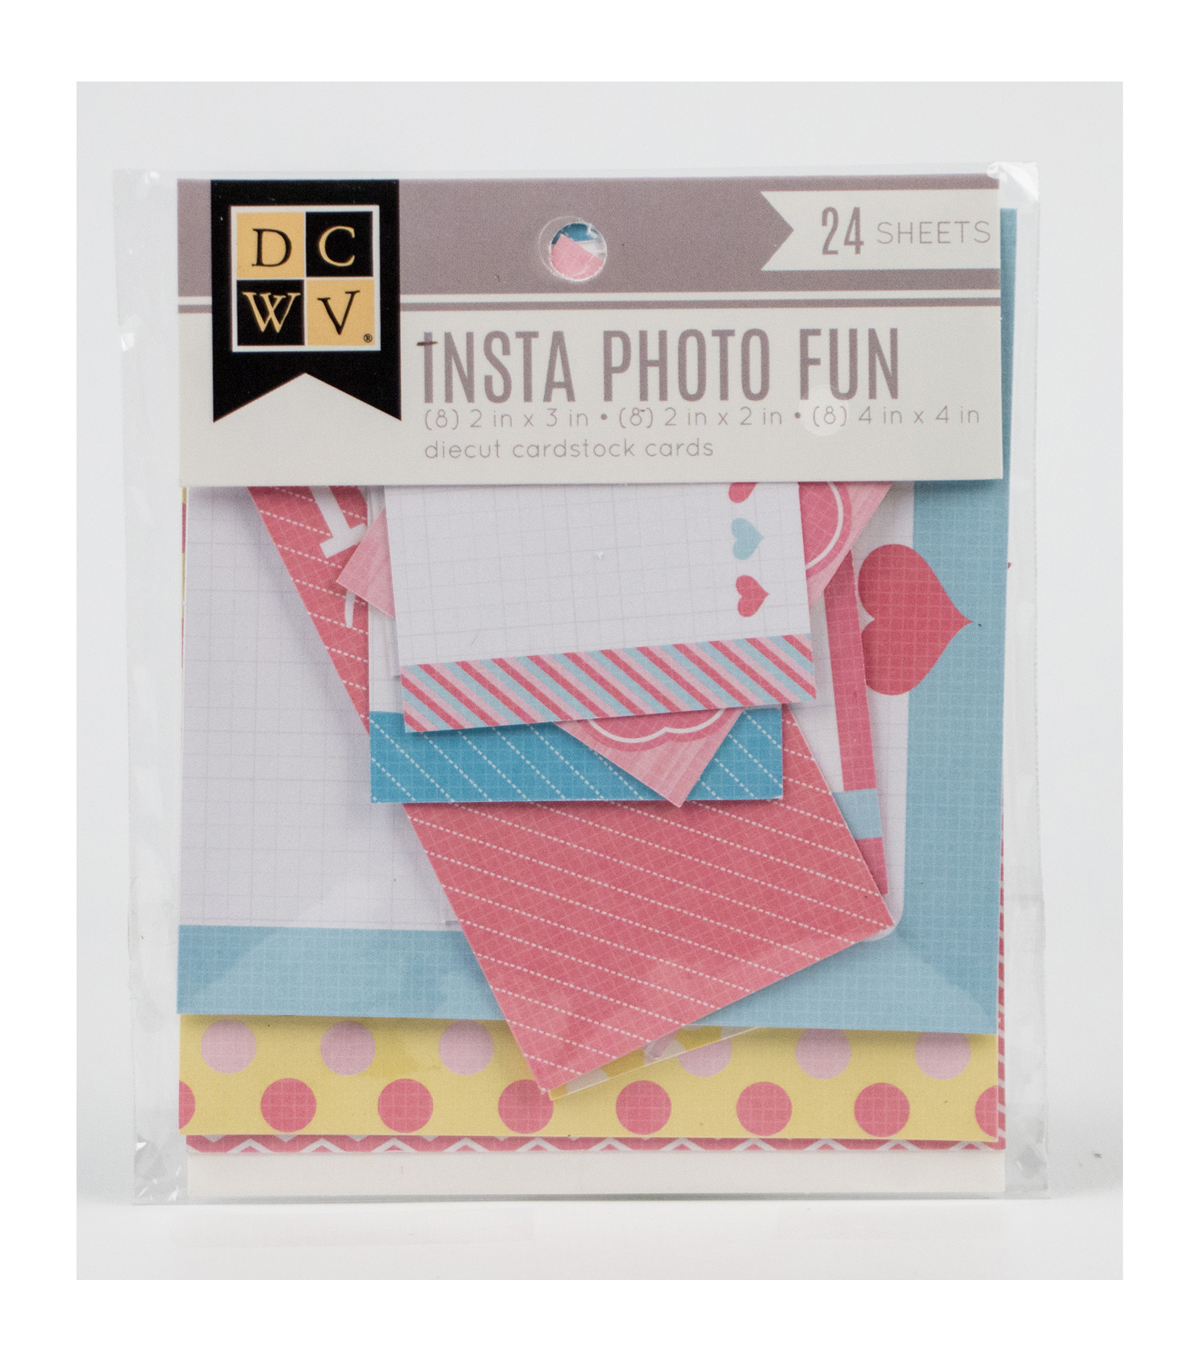 DCWV Insta Photo Fun Accessories: Pastel-themed pages and cards